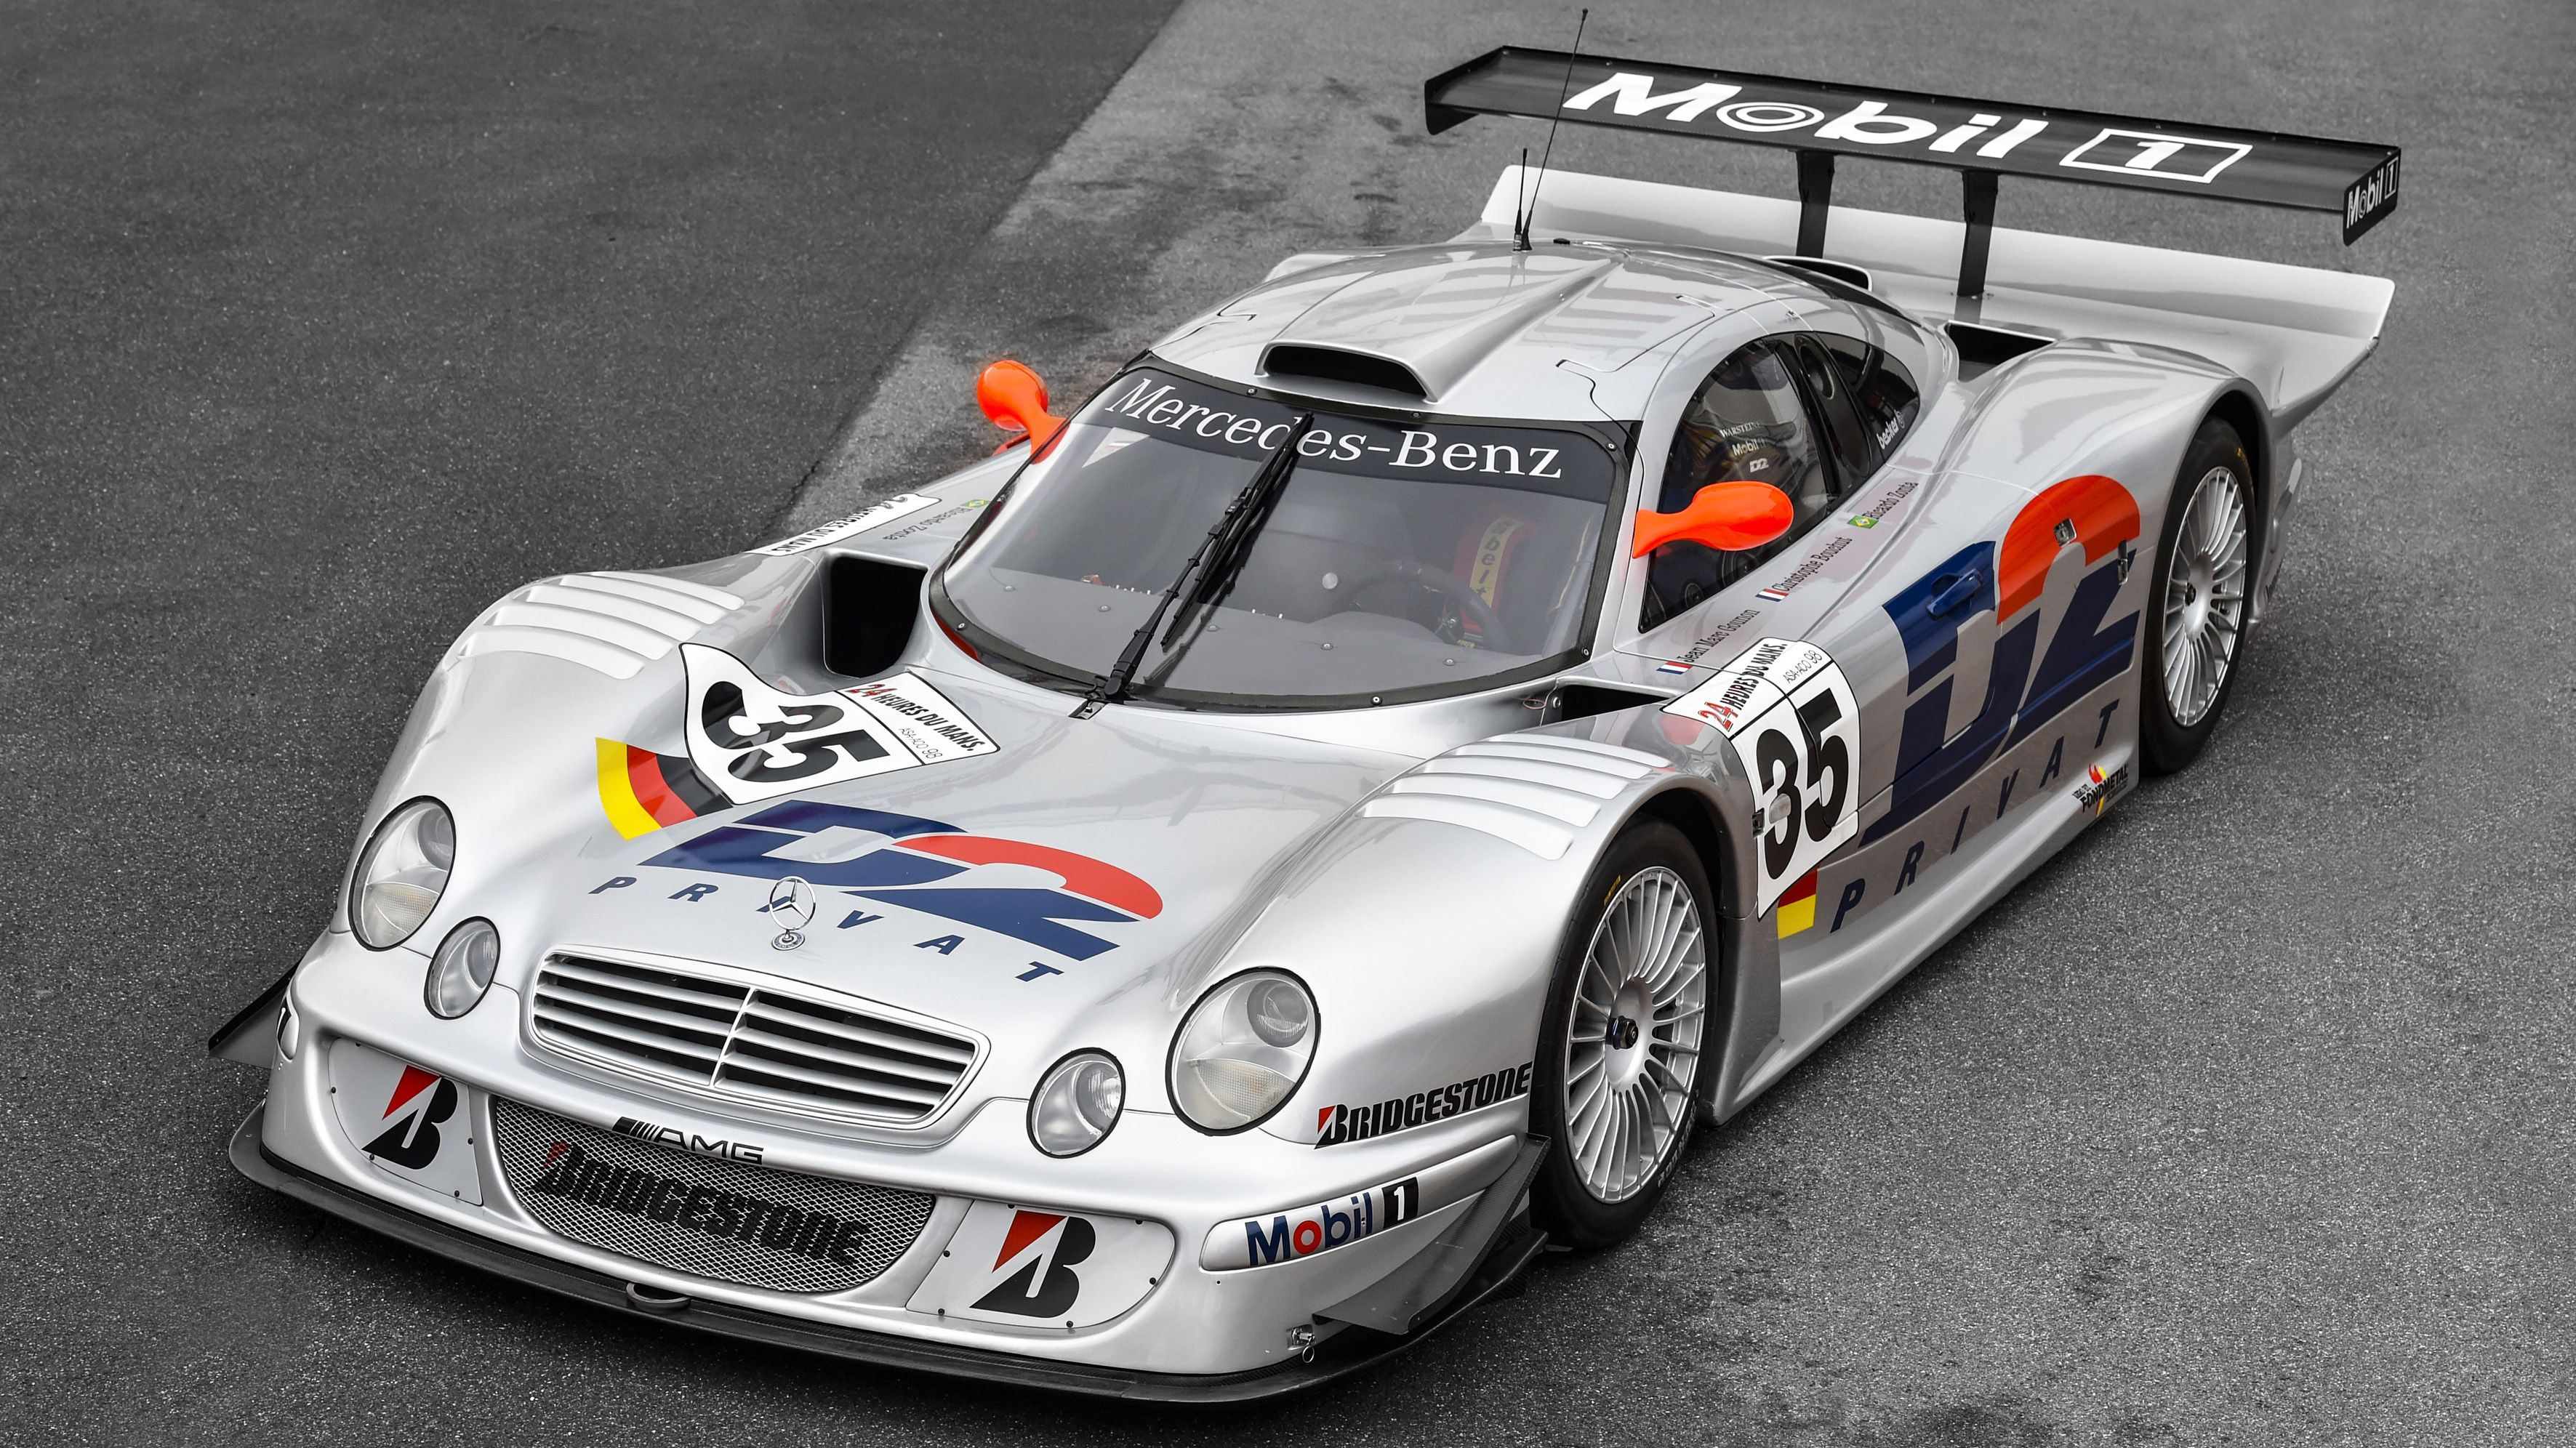 mercedes benz clk gtr amg racing version 1998 mercedes. Black Bedroom Furniture Sets. Home Design Ideas